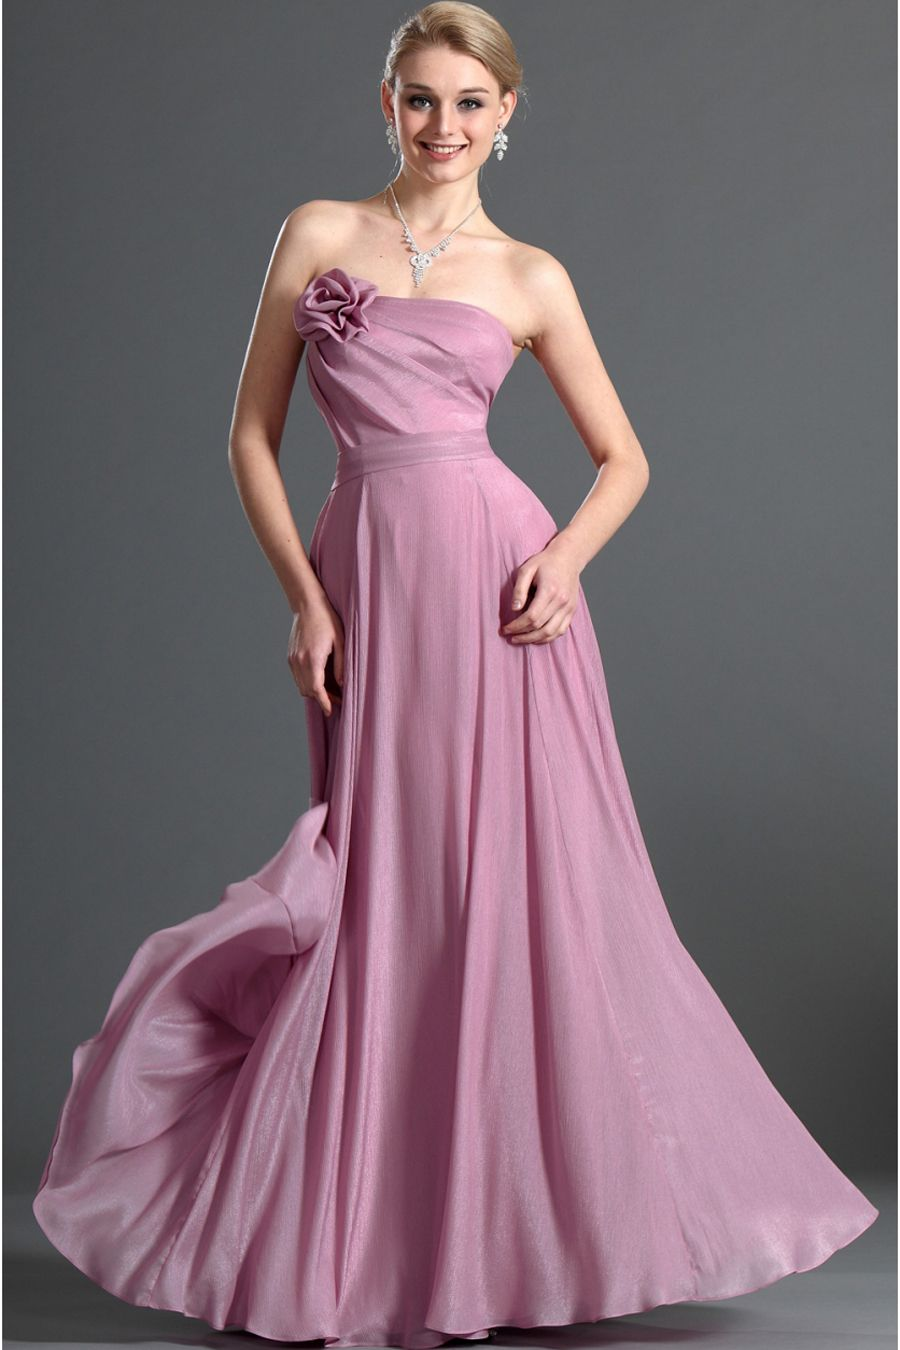 Hot Pearl Pink Chiffon Floor-Length A-Line Prom Dress | Long Prom ...